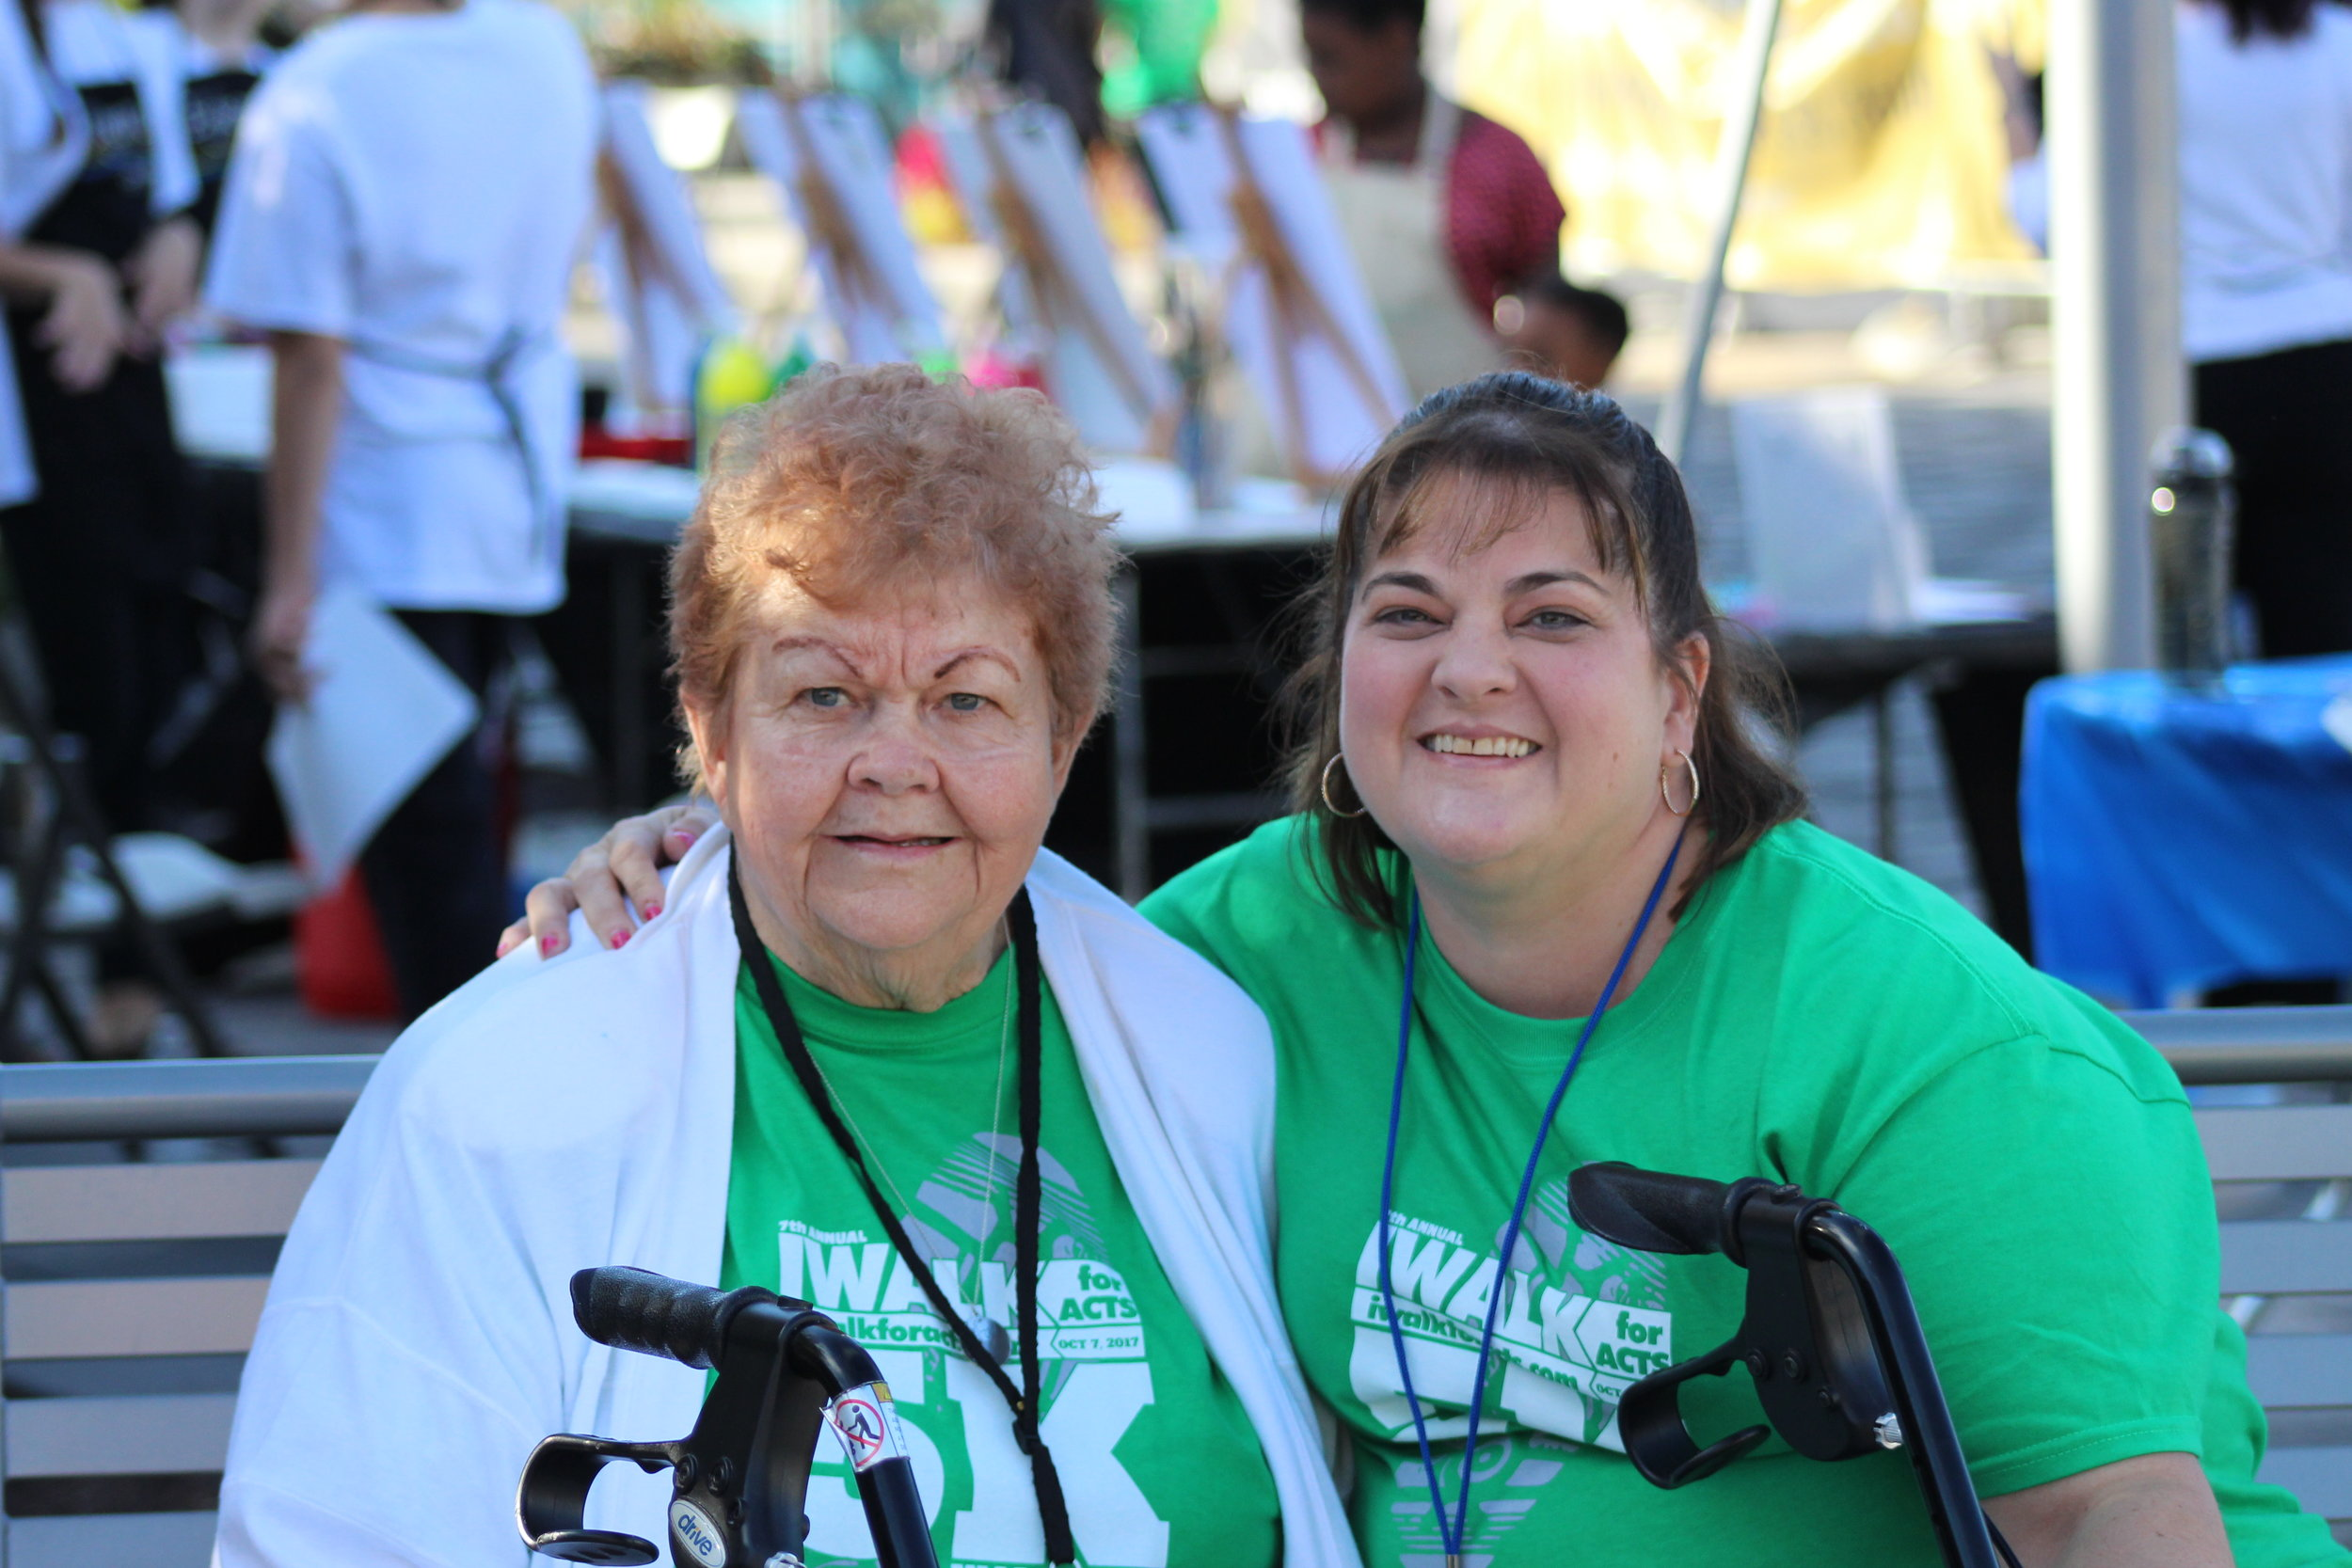 Image Church members Sherry Rickard (right) and her mother Betty Gonzalez volunteering at IWALK for ACTS in October